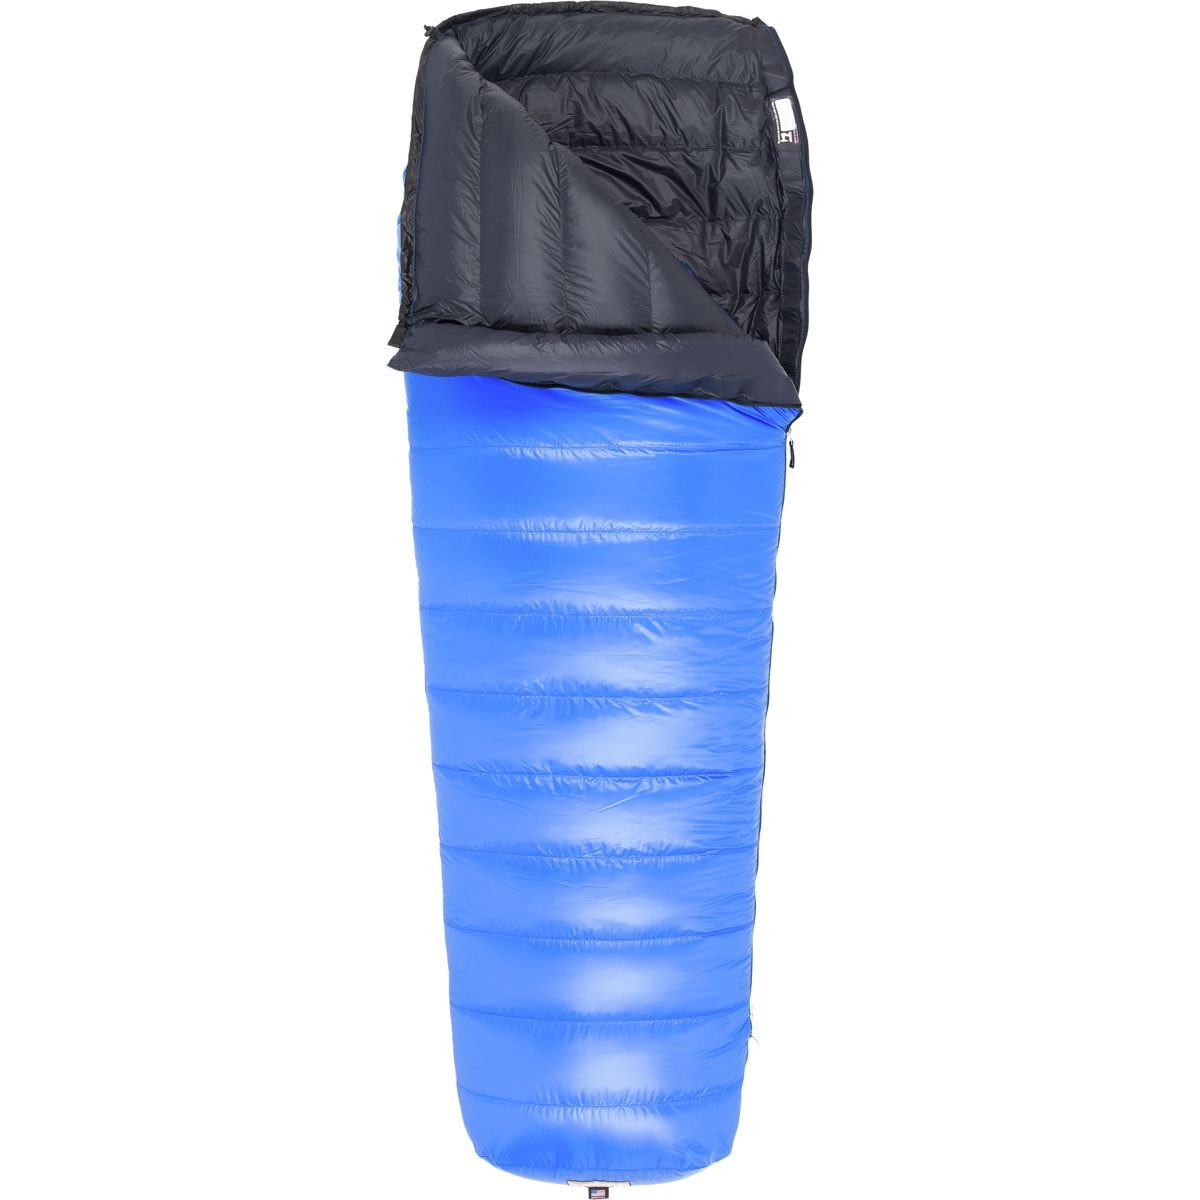 An image of Western Mountaineering Alder MF 30 Degree Sleeping Bag